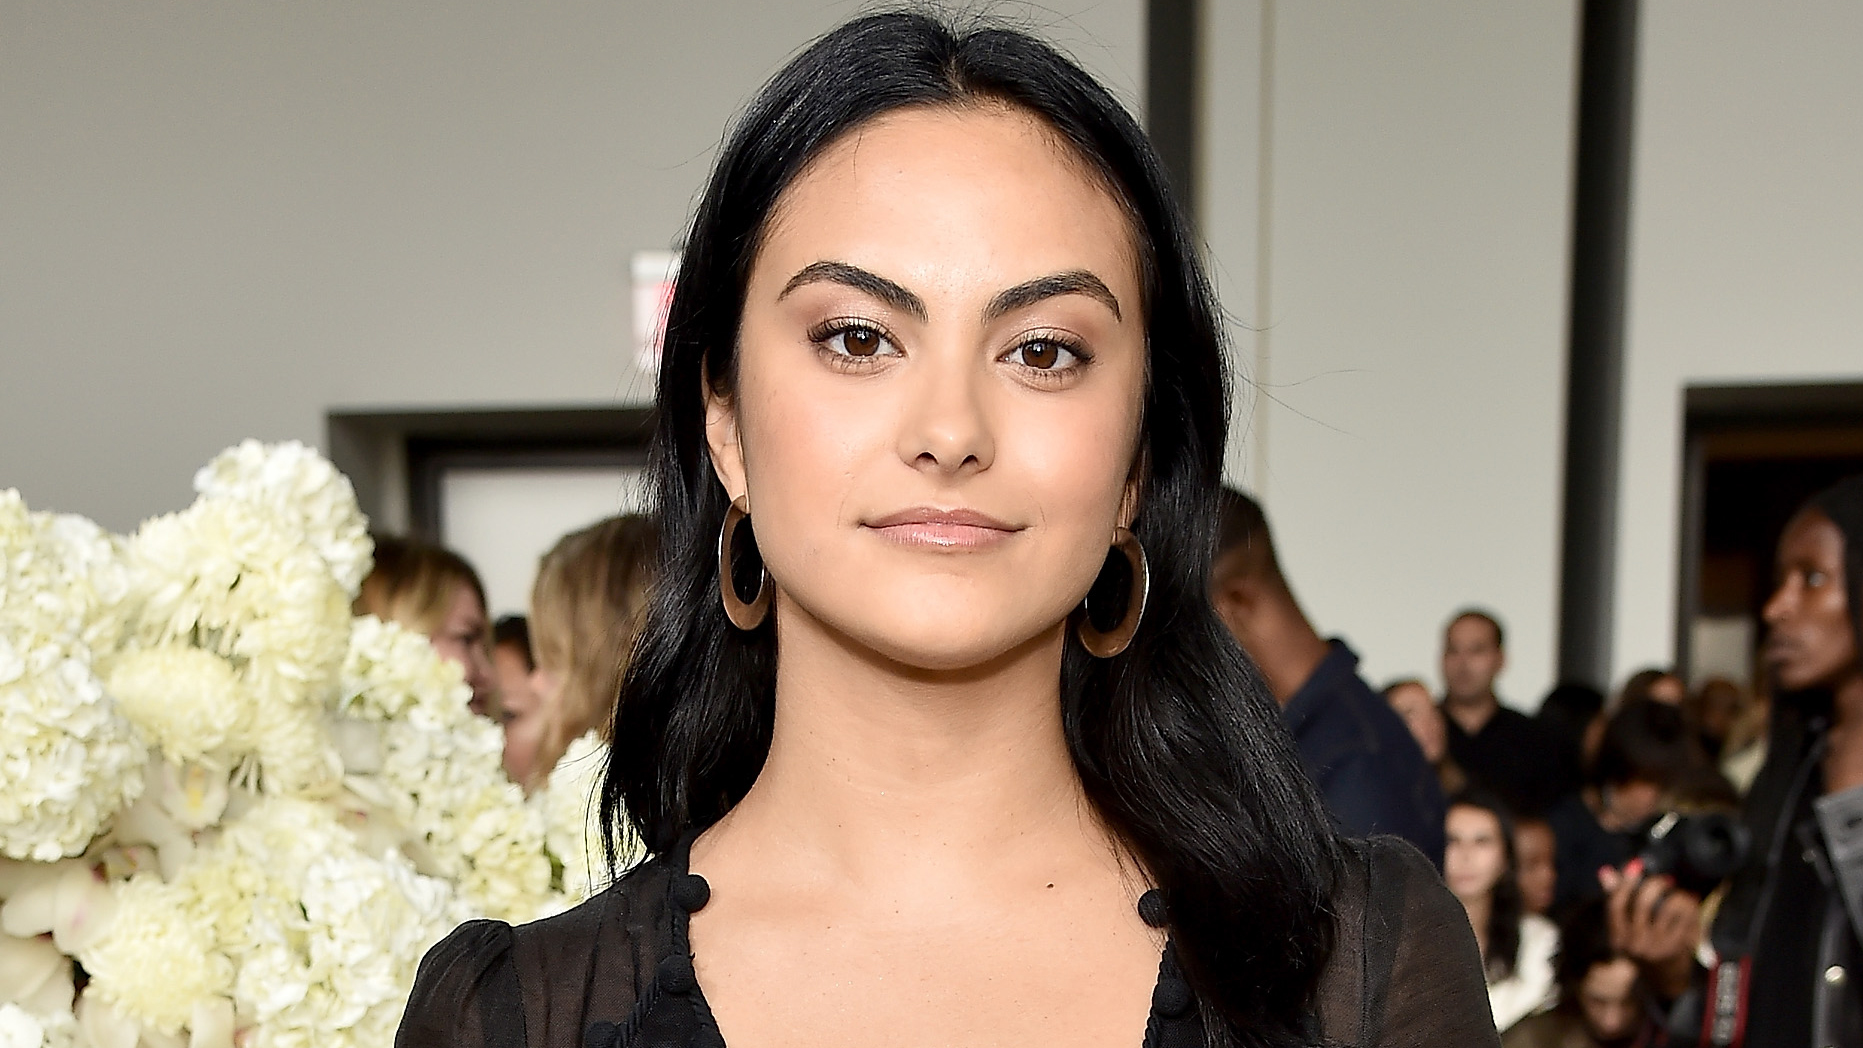 Camila Mendes Just Got Rid of Her Veronica Lodge Hair